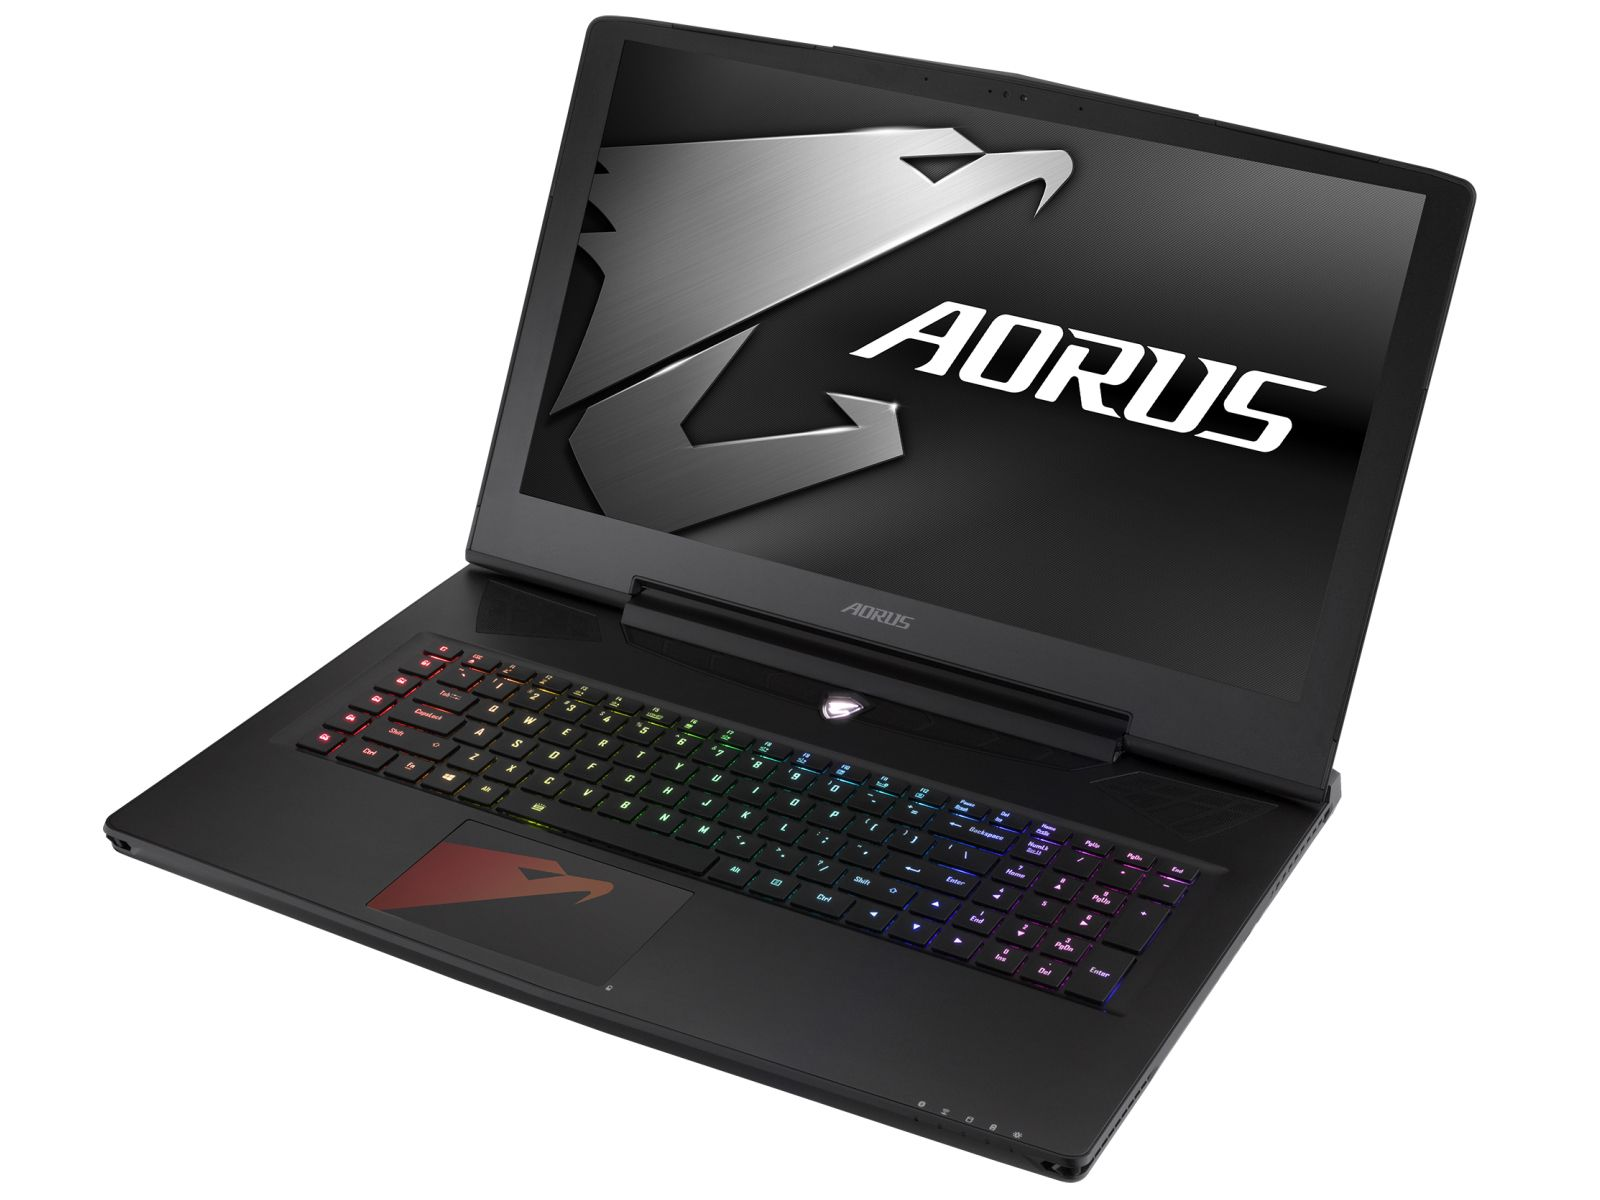 Aorus X7 DT and X5 Gigabyte notebooks with Intel Core i7-8850H